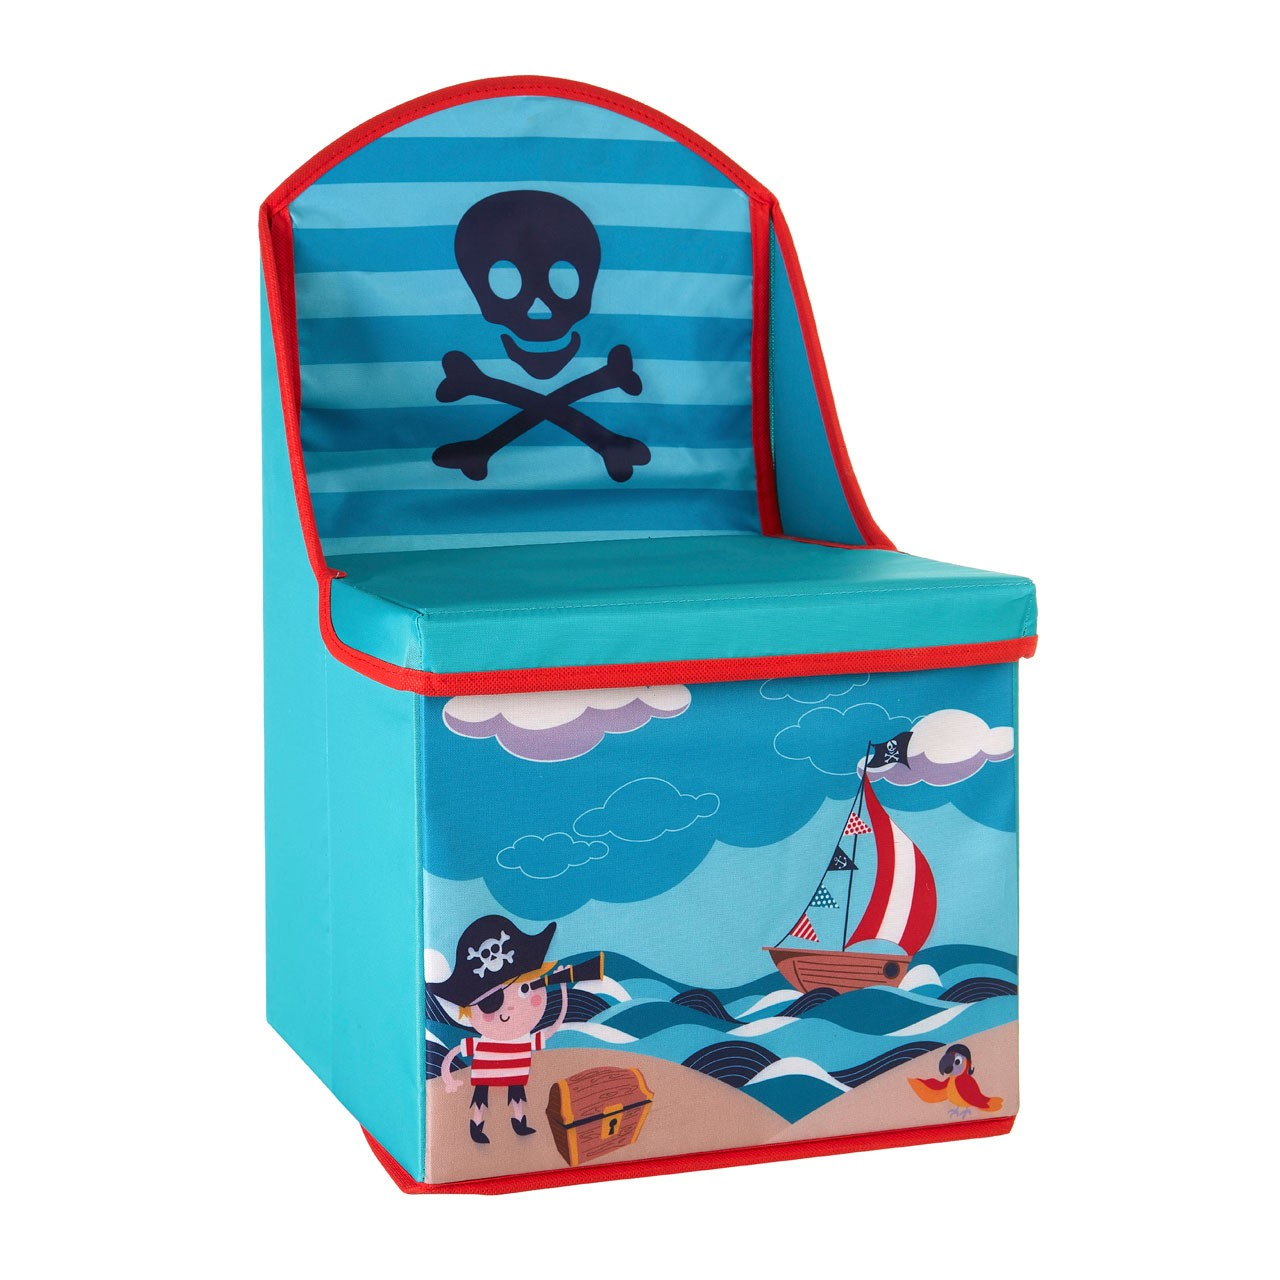 Prime Furnishing Children's Pirate Design Storage Box/Seat -Blue